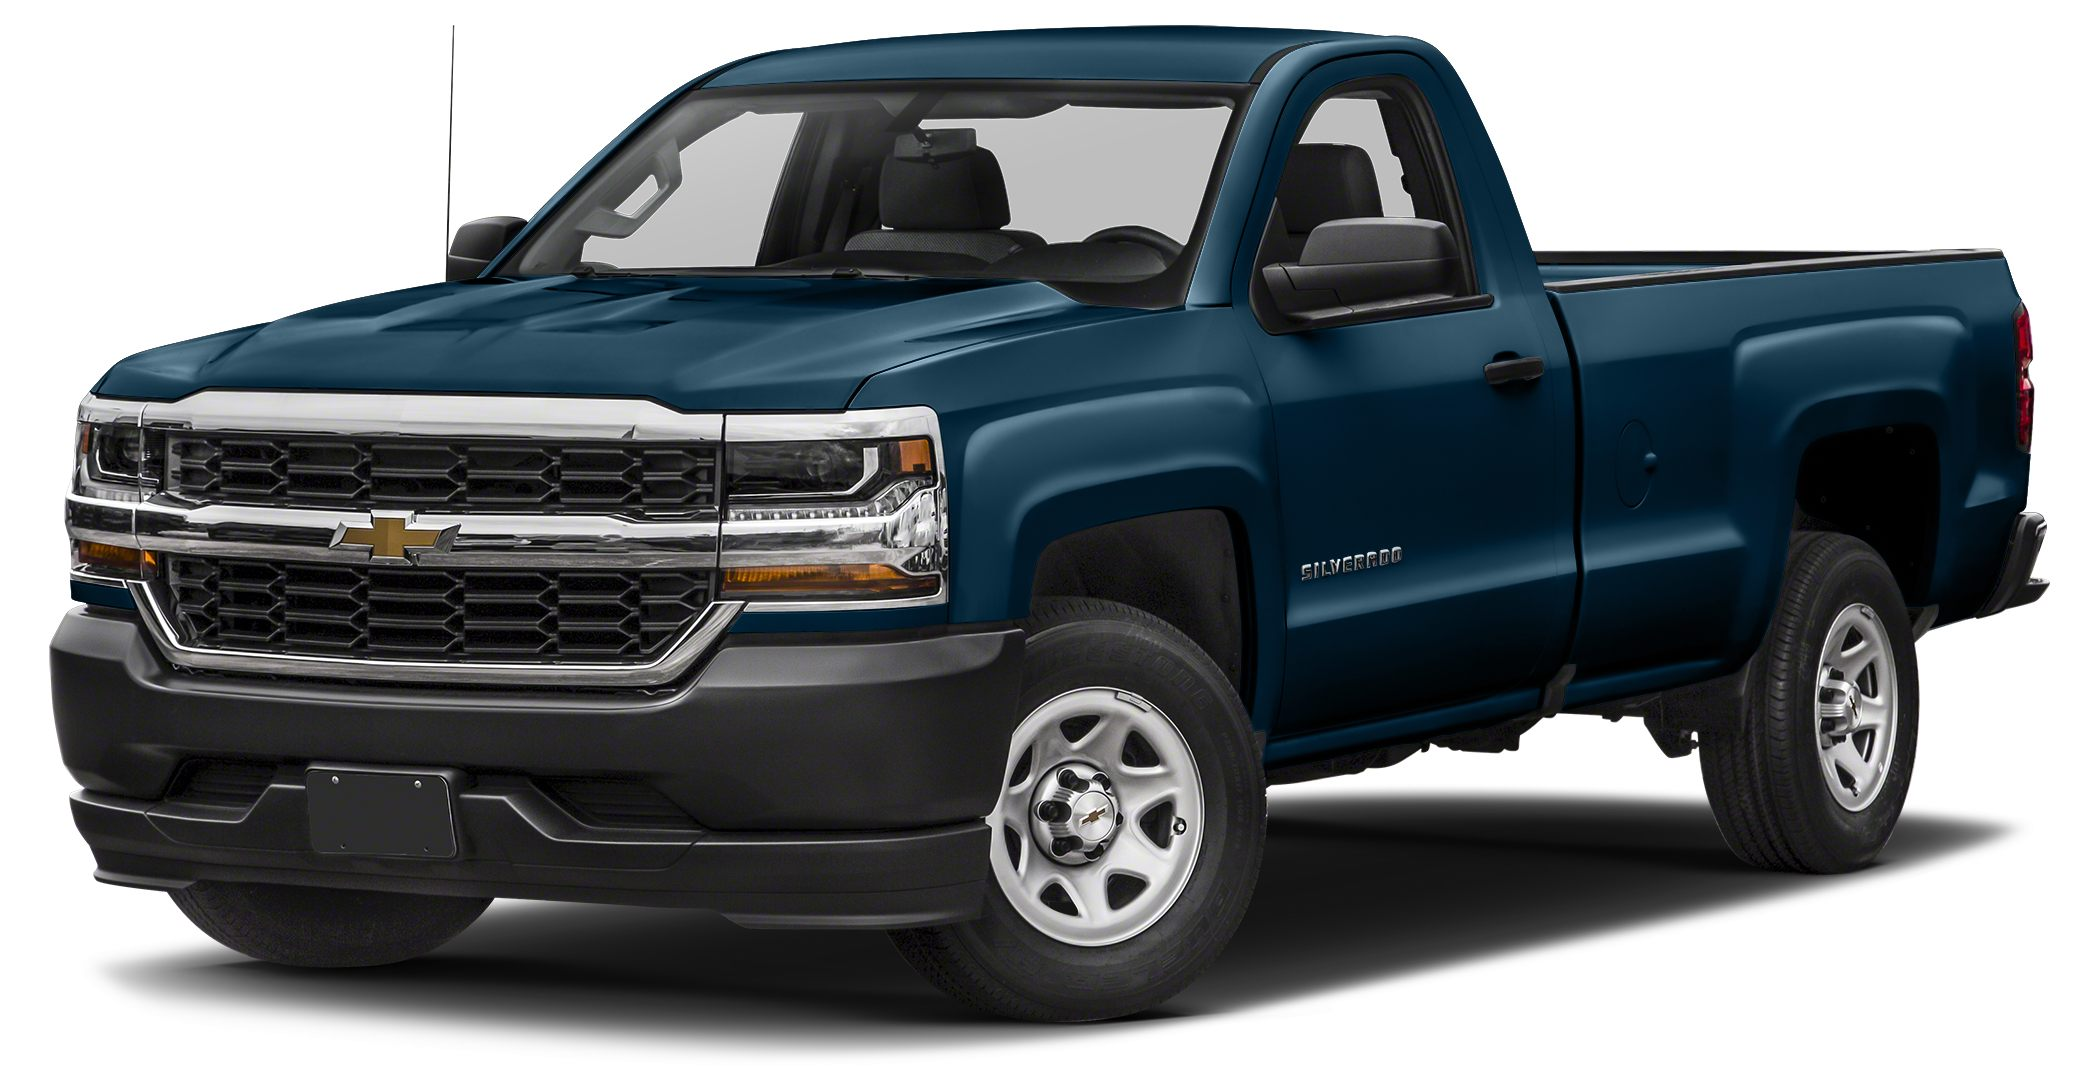 2016 Chevrolet Silverado 1500  Miles 0Color Deep Ocean Blue Metallic Stock 166798 VIN 1GCNCN